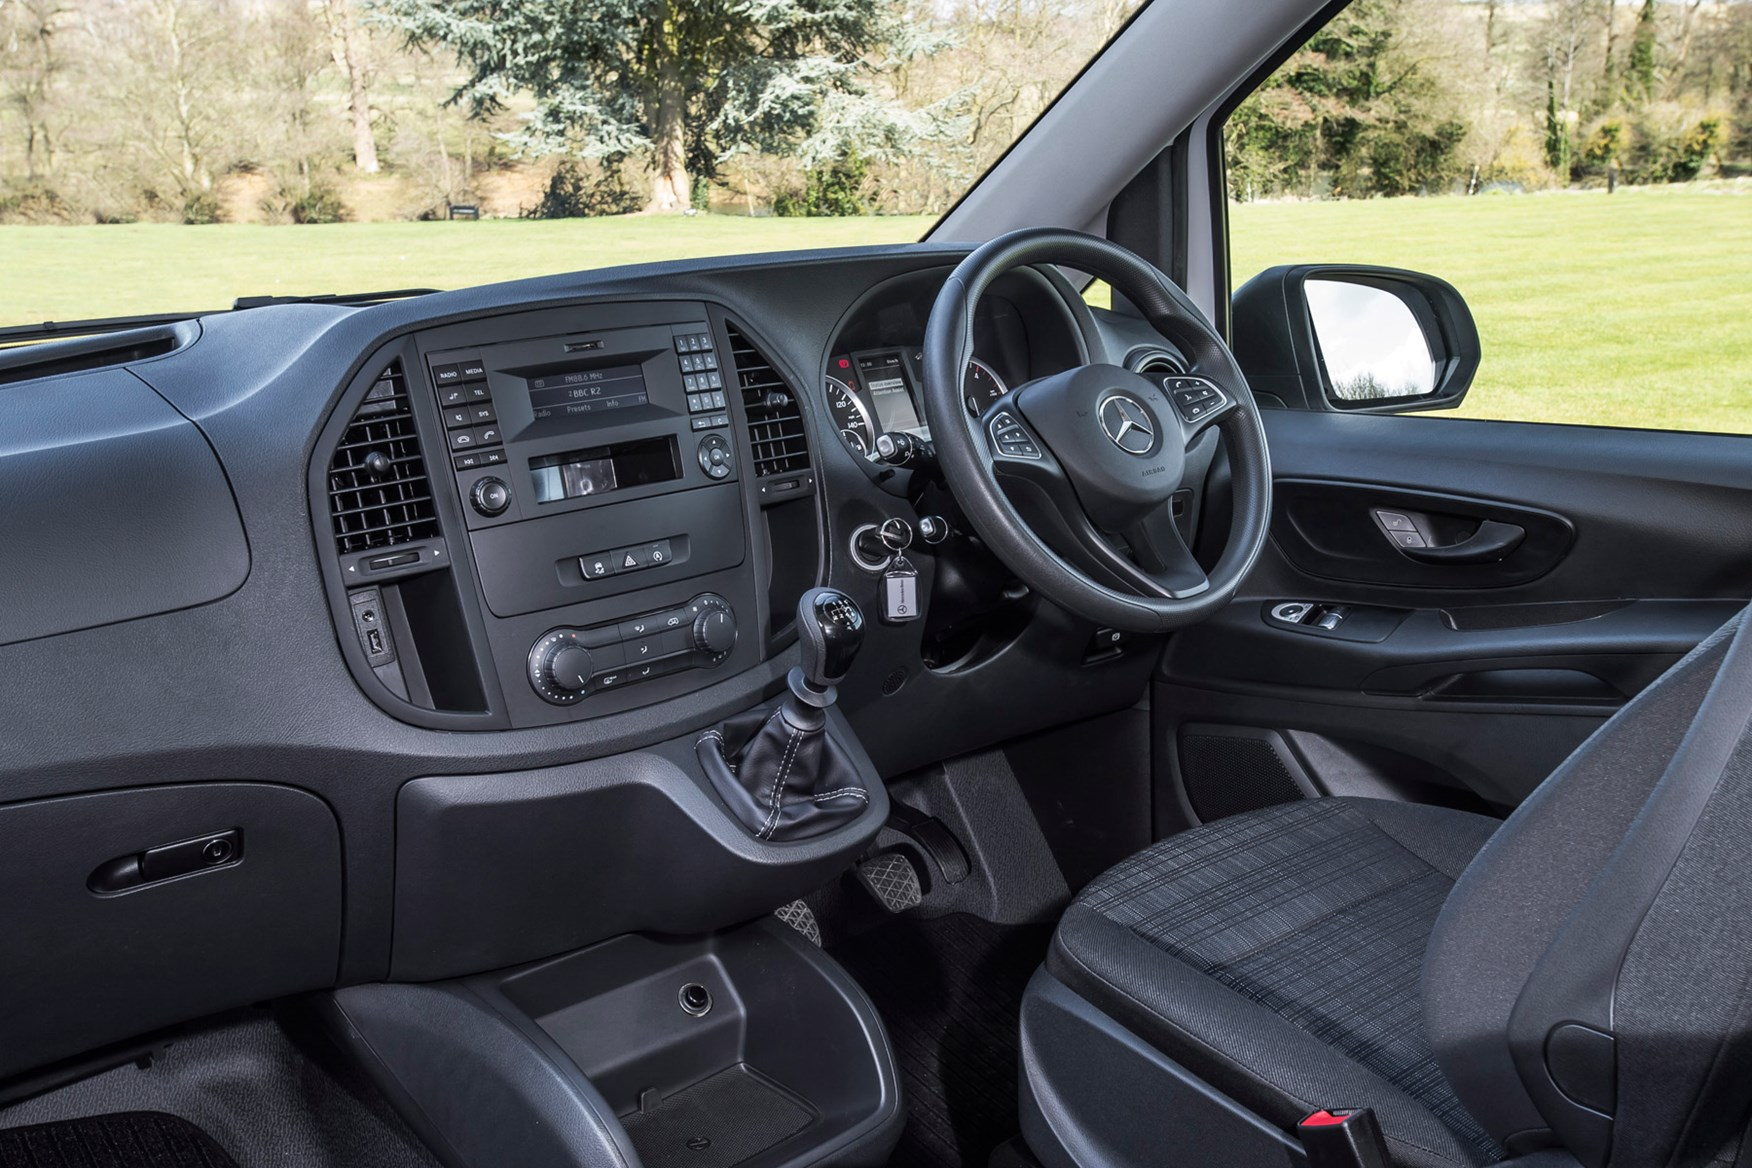 Mercedes-Benz Vito full review on Parkers Vans - cabin interior